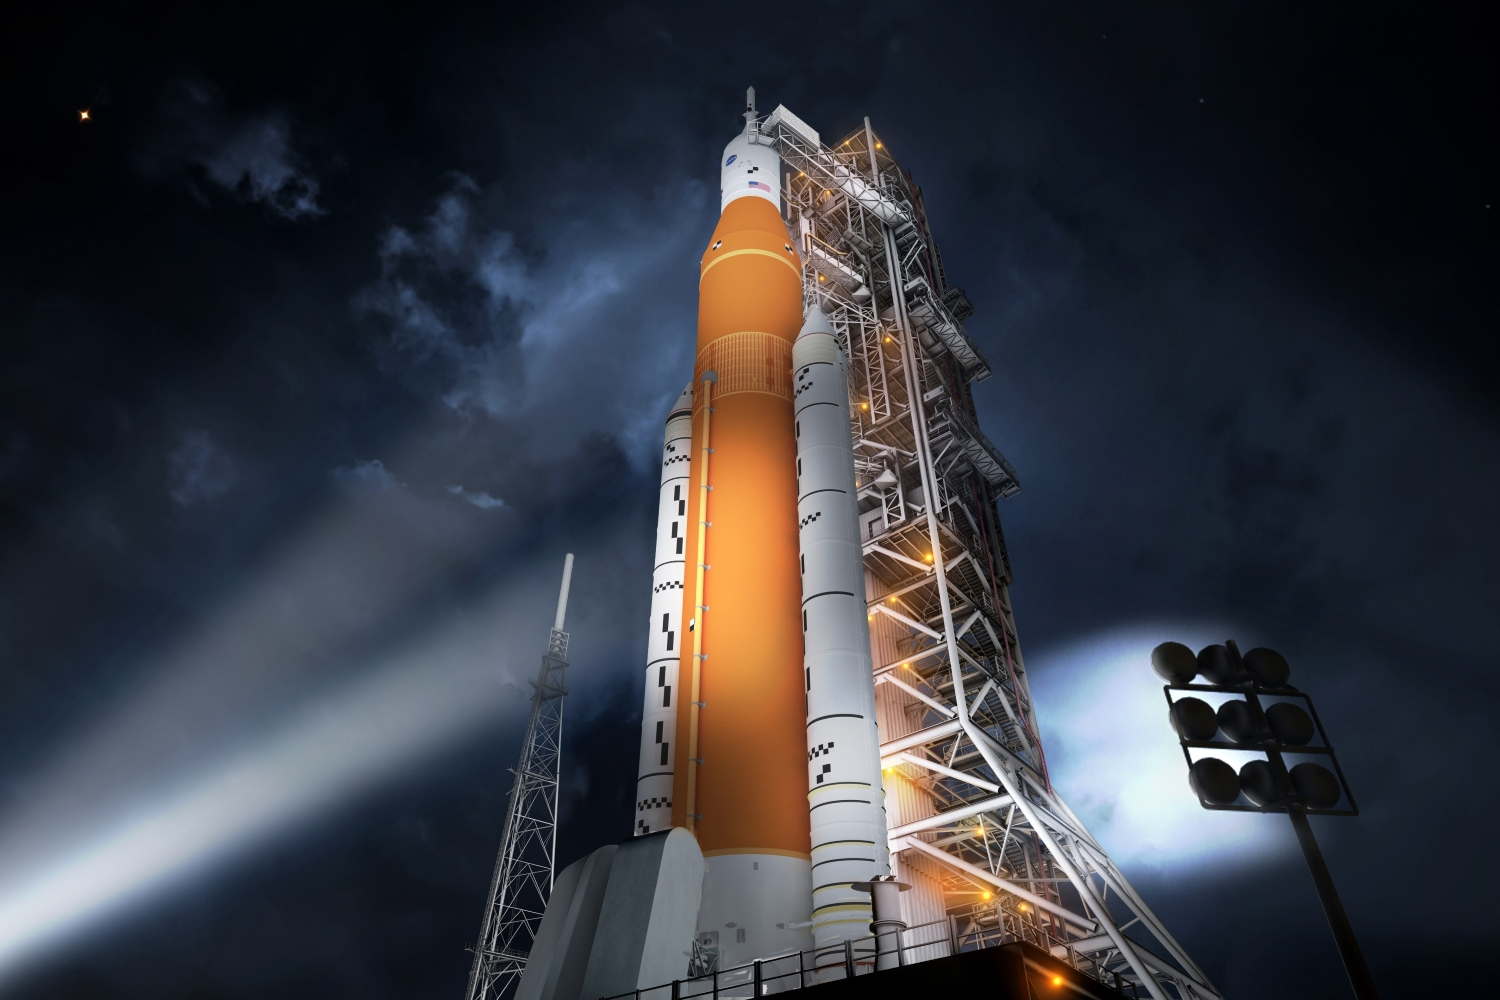 SLS Block-1 on launchpad at night